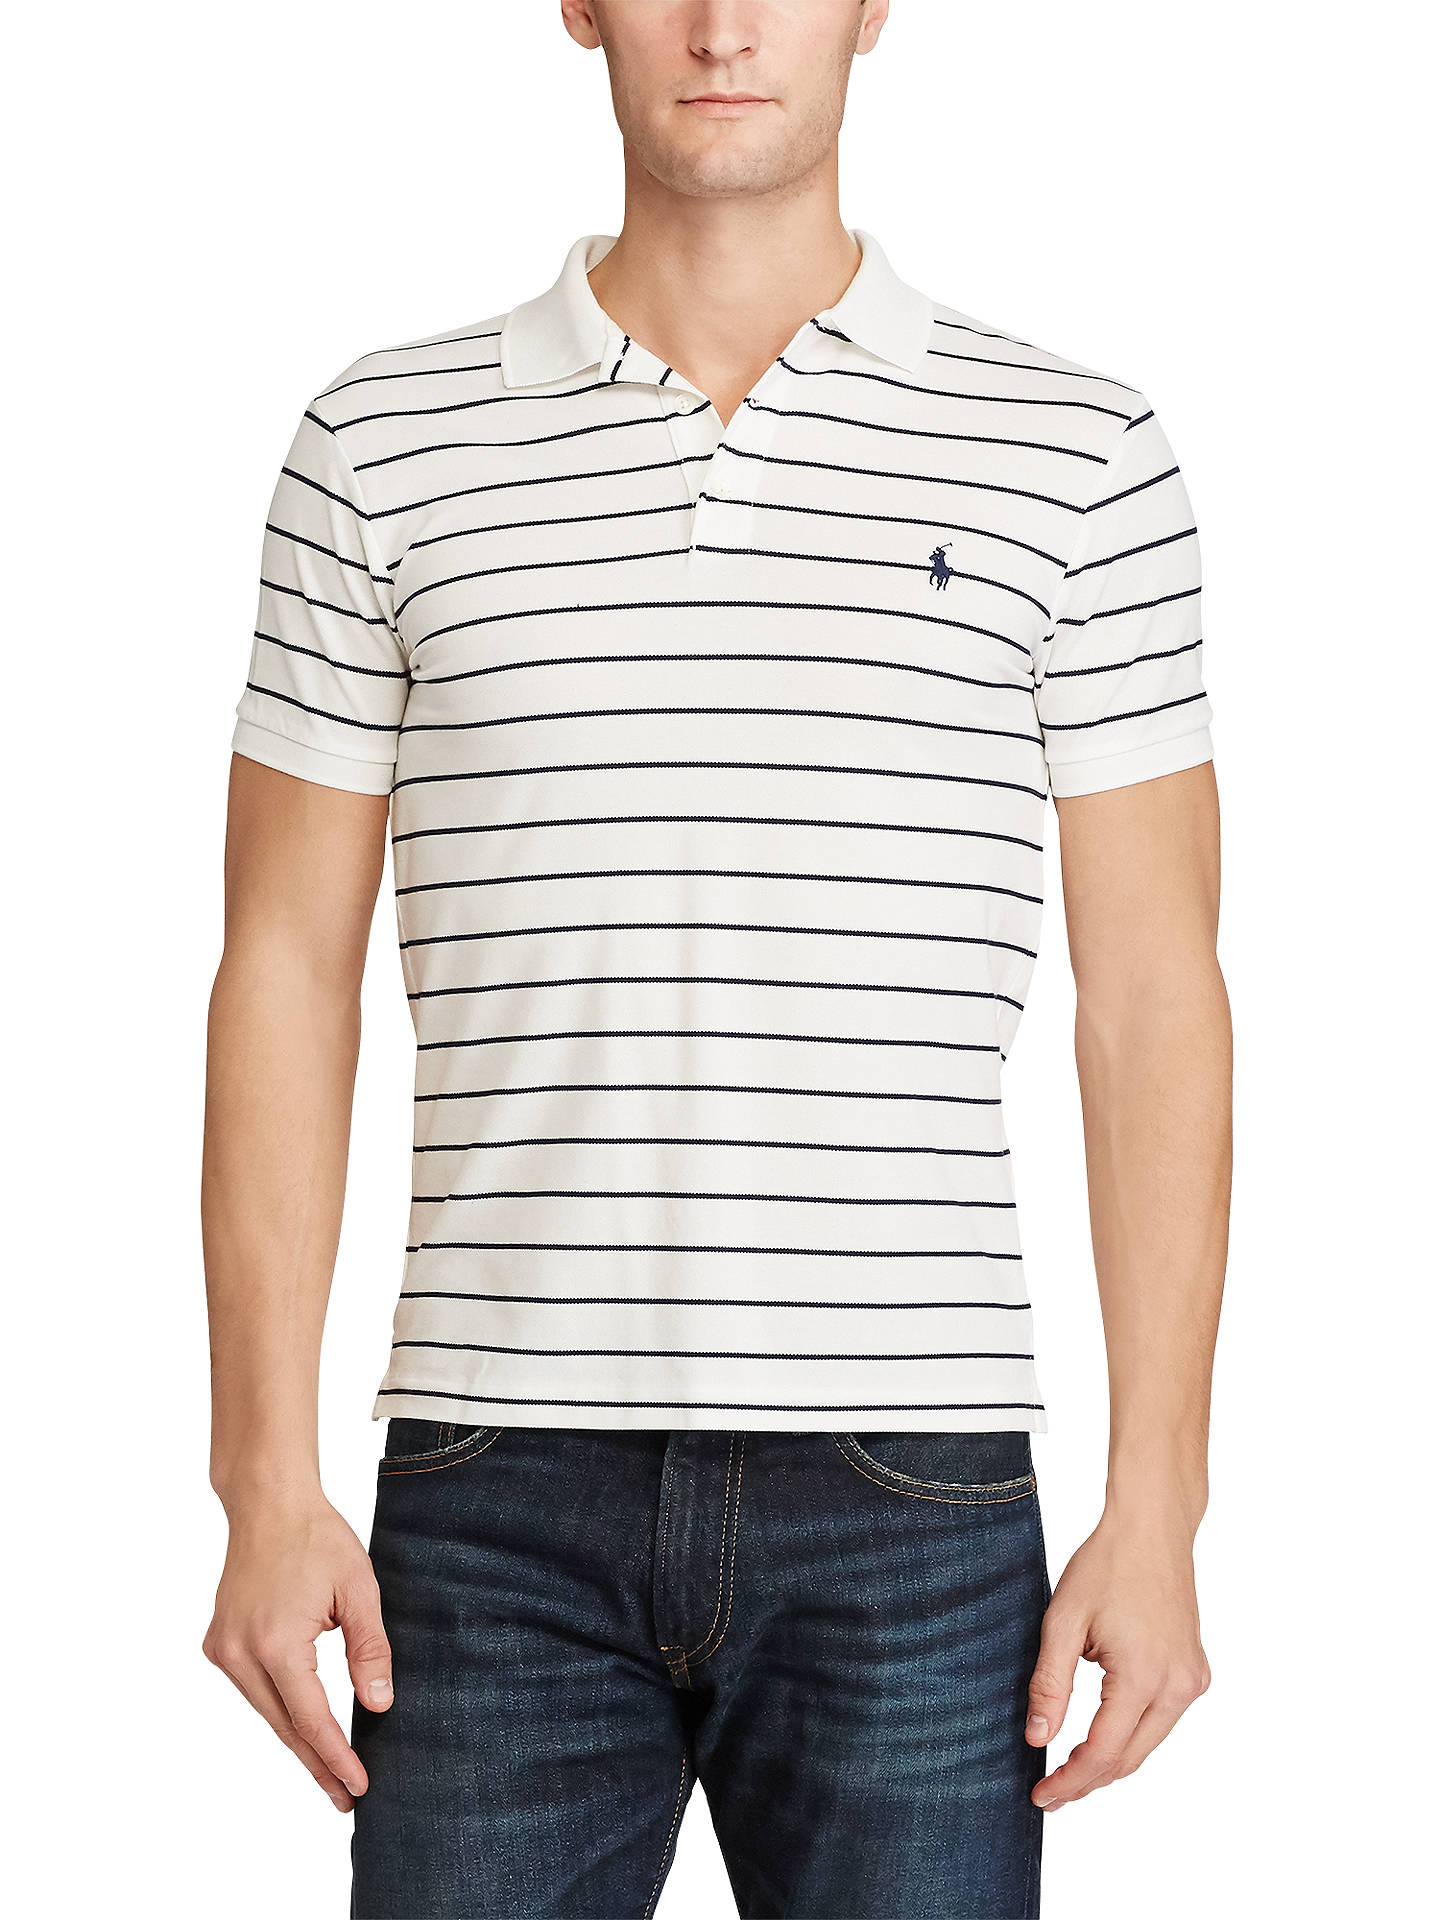 cc1d8c2f610f Buy Polo Ralph Lauren Striped Slim Fit Stretch Cotton Mesh Polo Shirt, White/Newport  ...